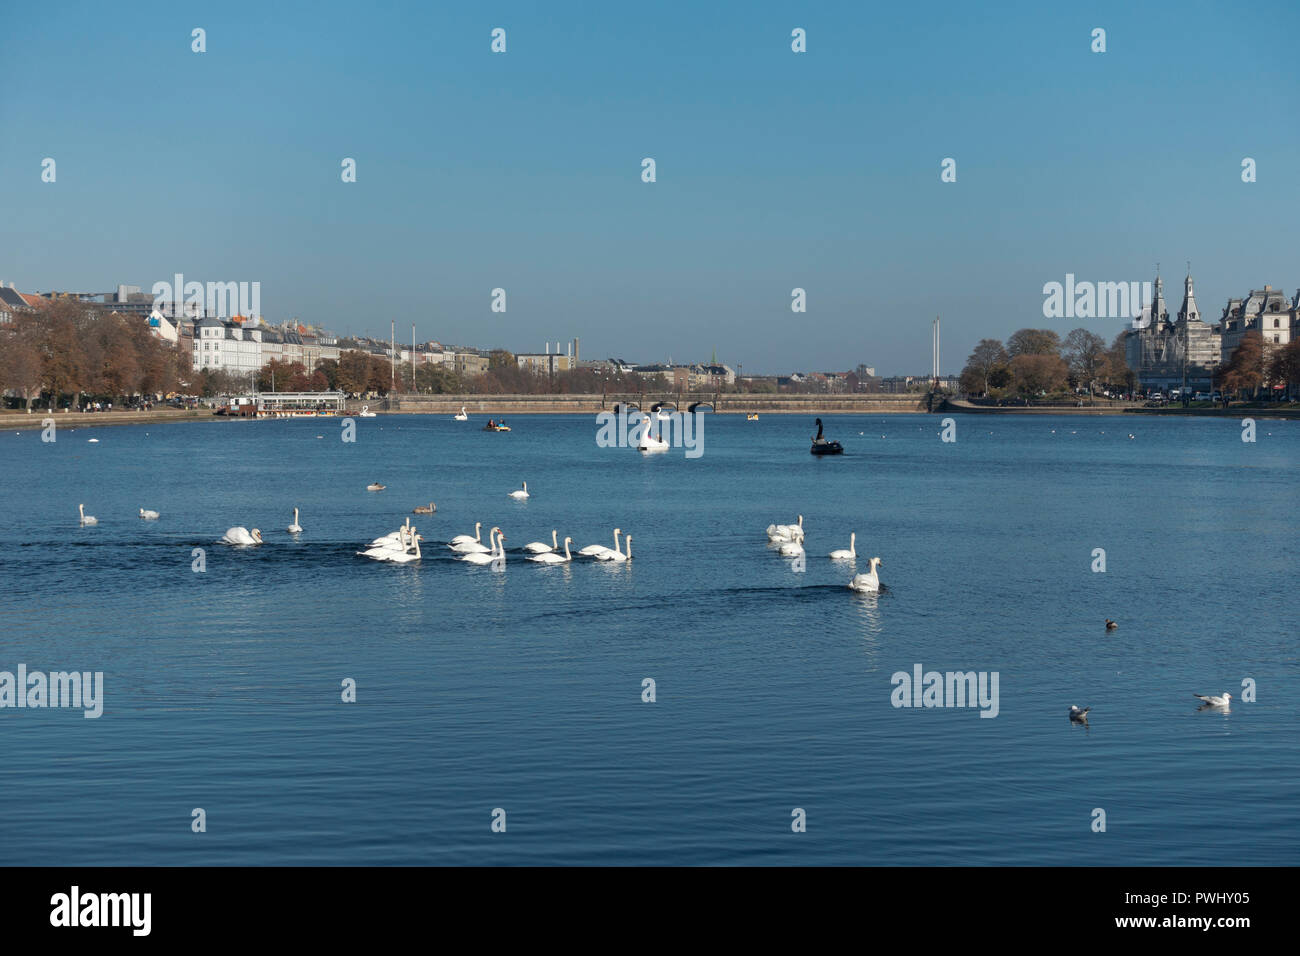 Swans and pedalos designed as swans on the Peblinge Lake in Copenhagen on a sunny and warm late indian summer day. Queen Louise Bridge in distance - Stock Image